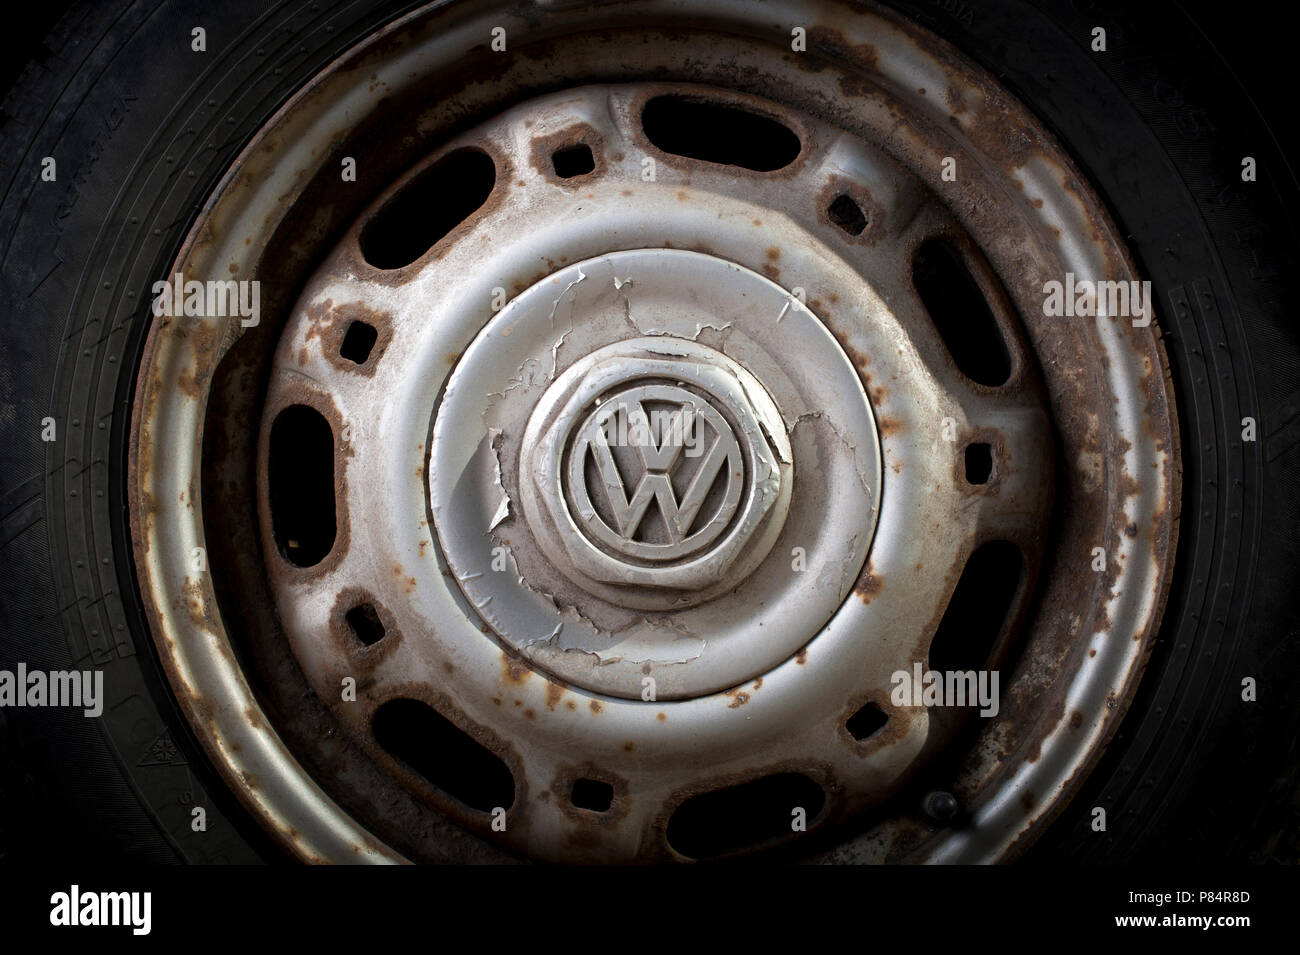 Corroded wheel on a second hand car. - Stock Image